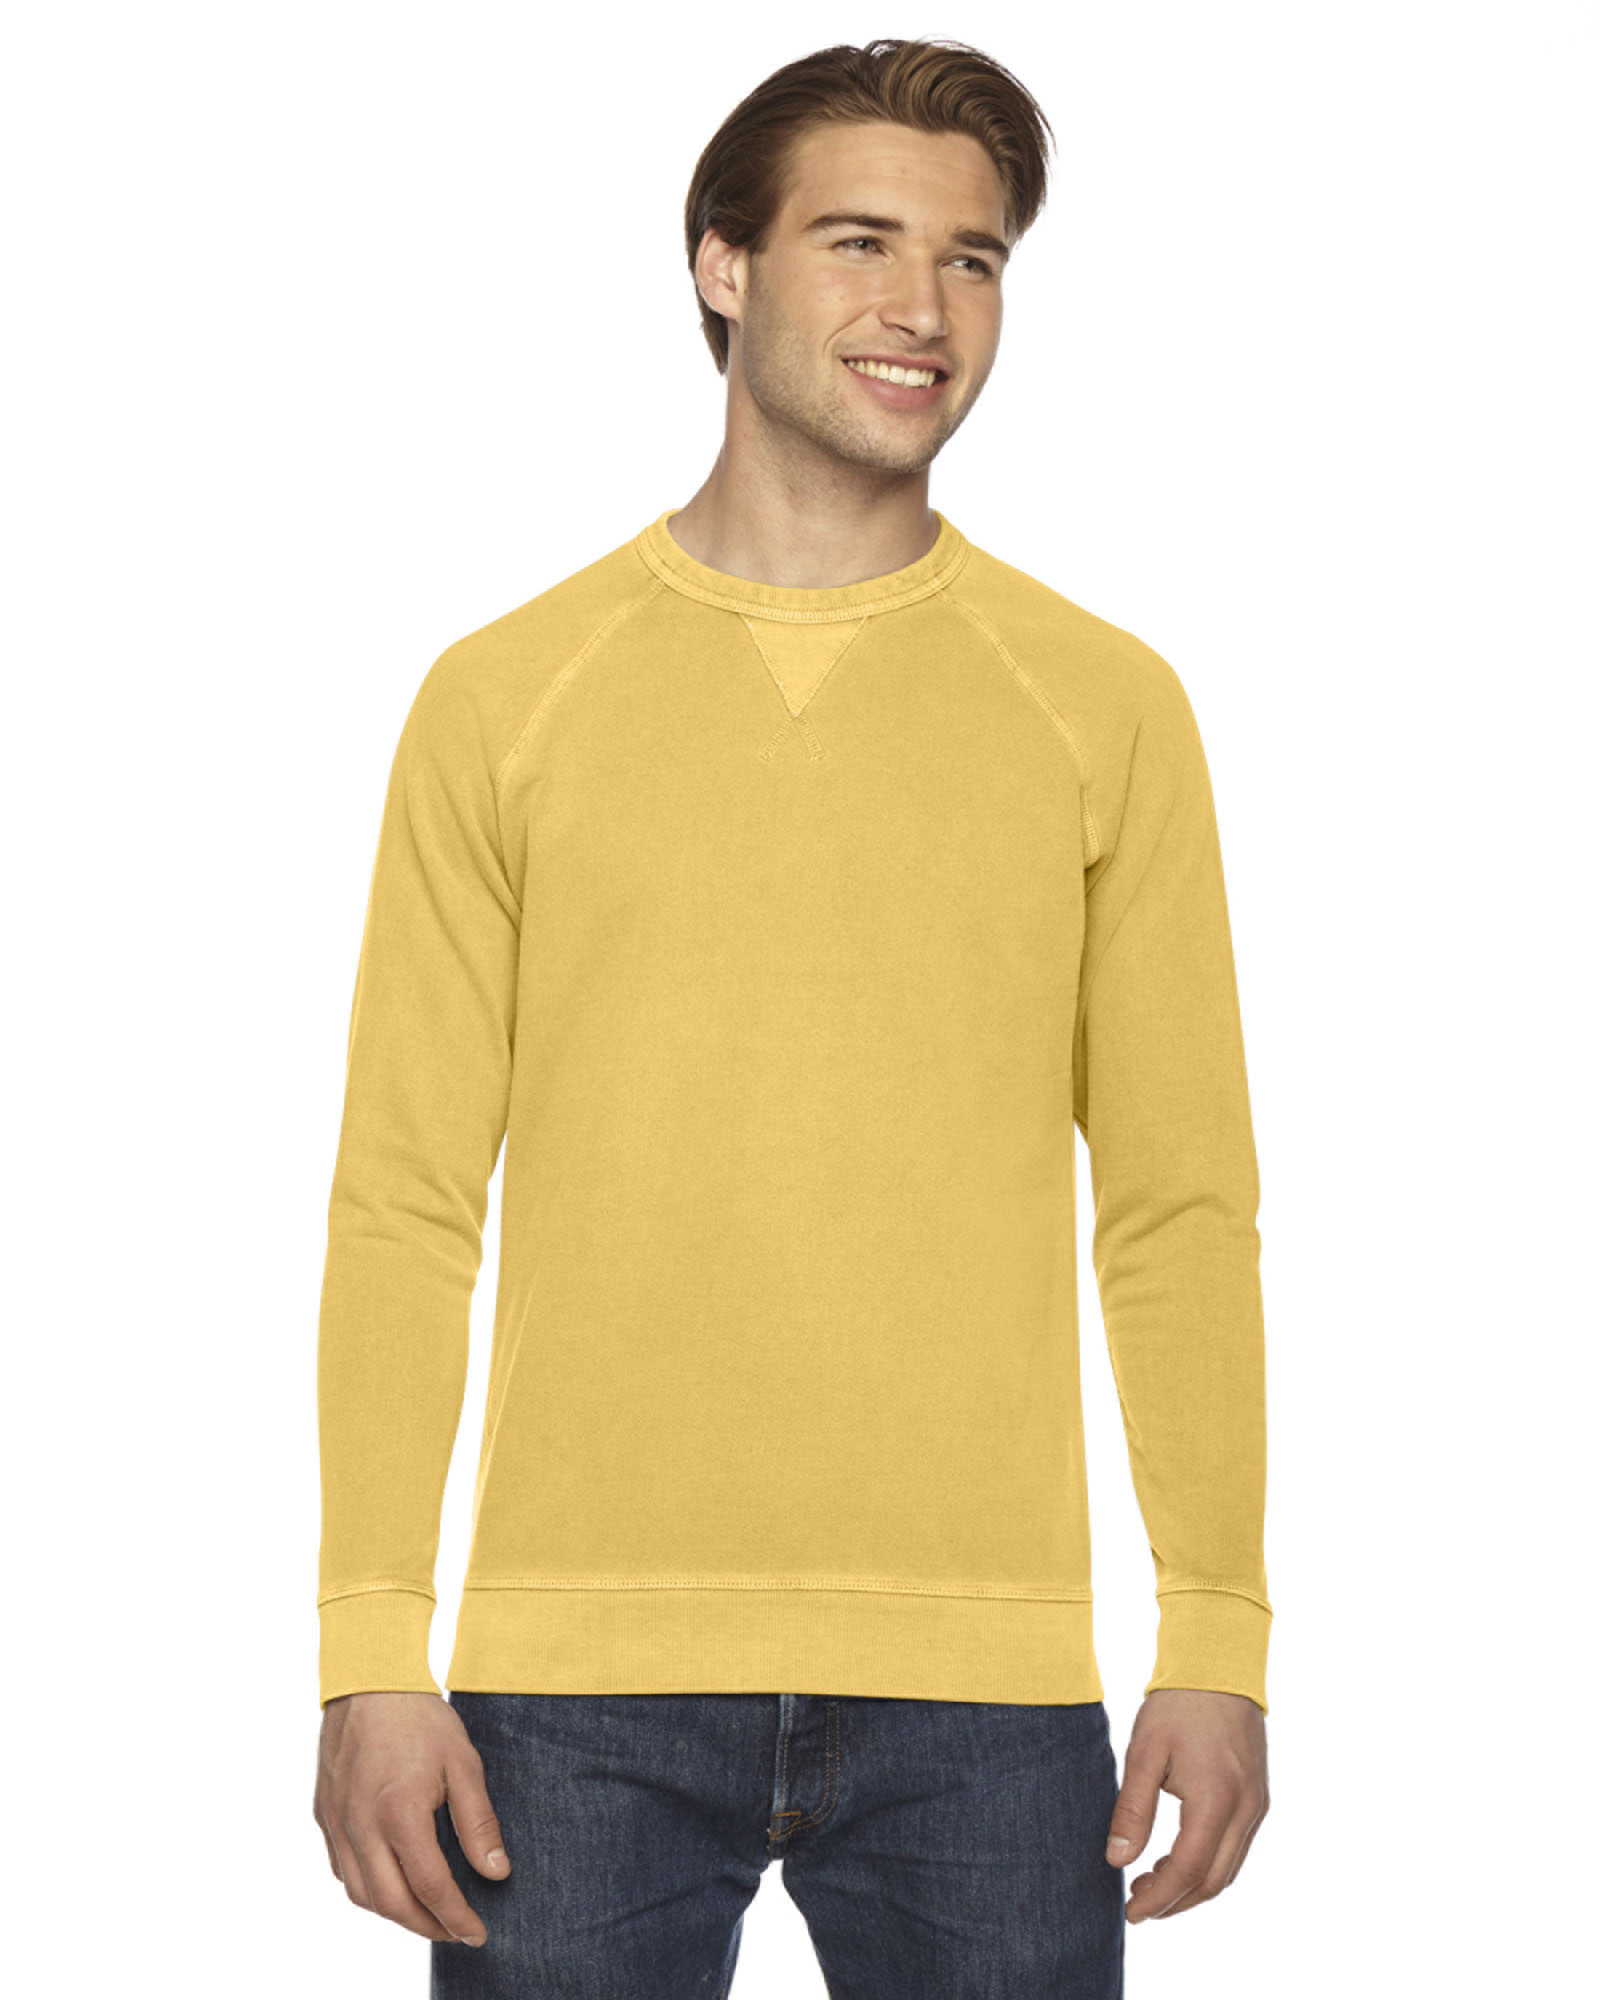 Authentic Pigment AP205 - Men's French Terry Crew